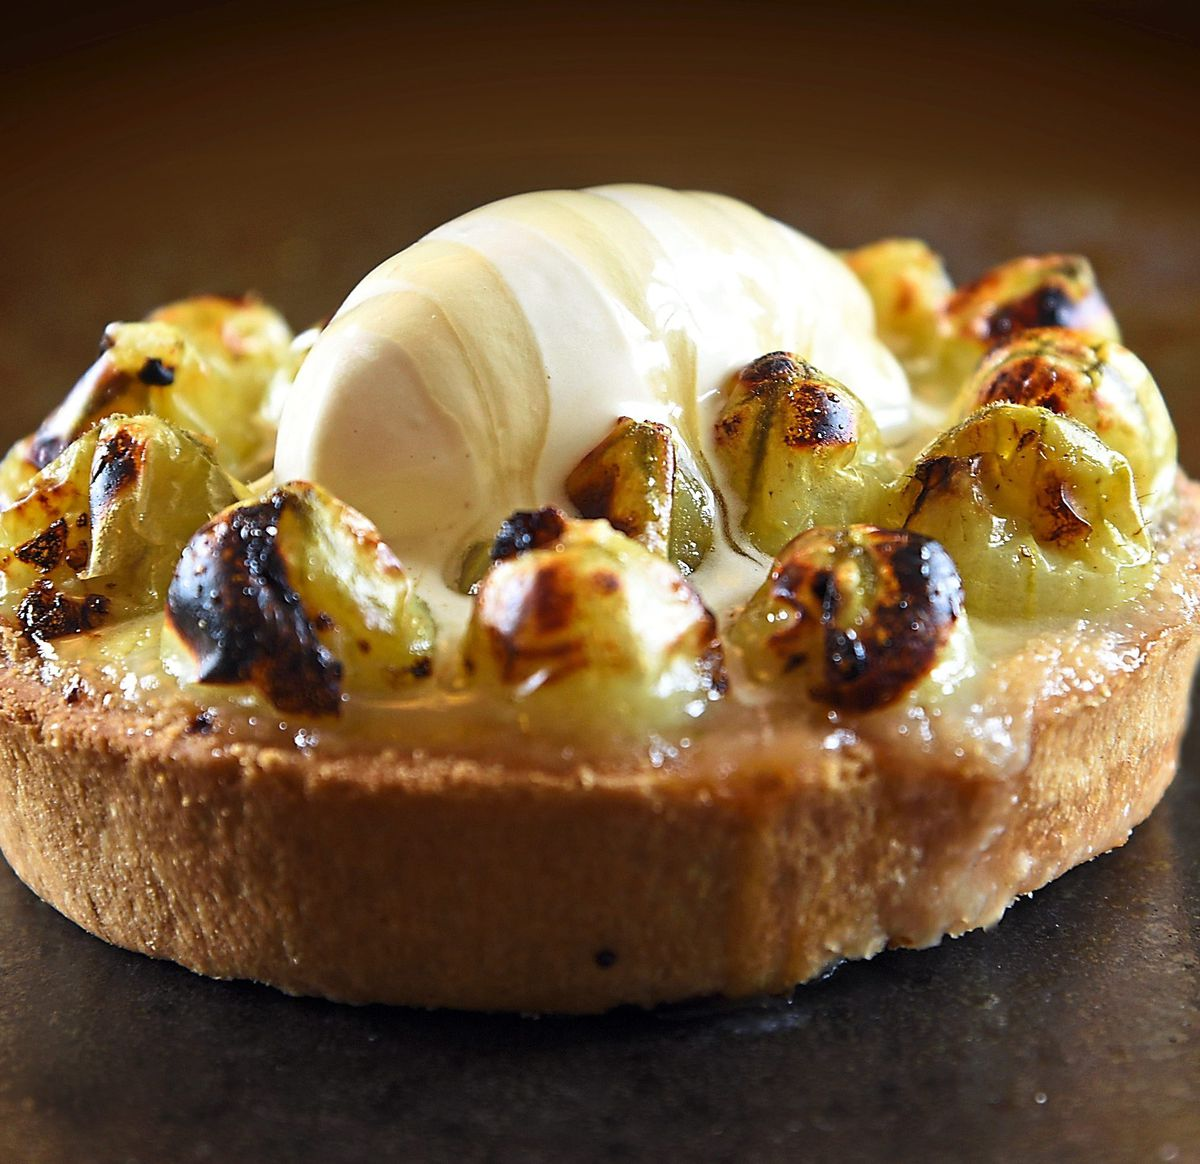 Sharp and sweet – the gooseberry tart